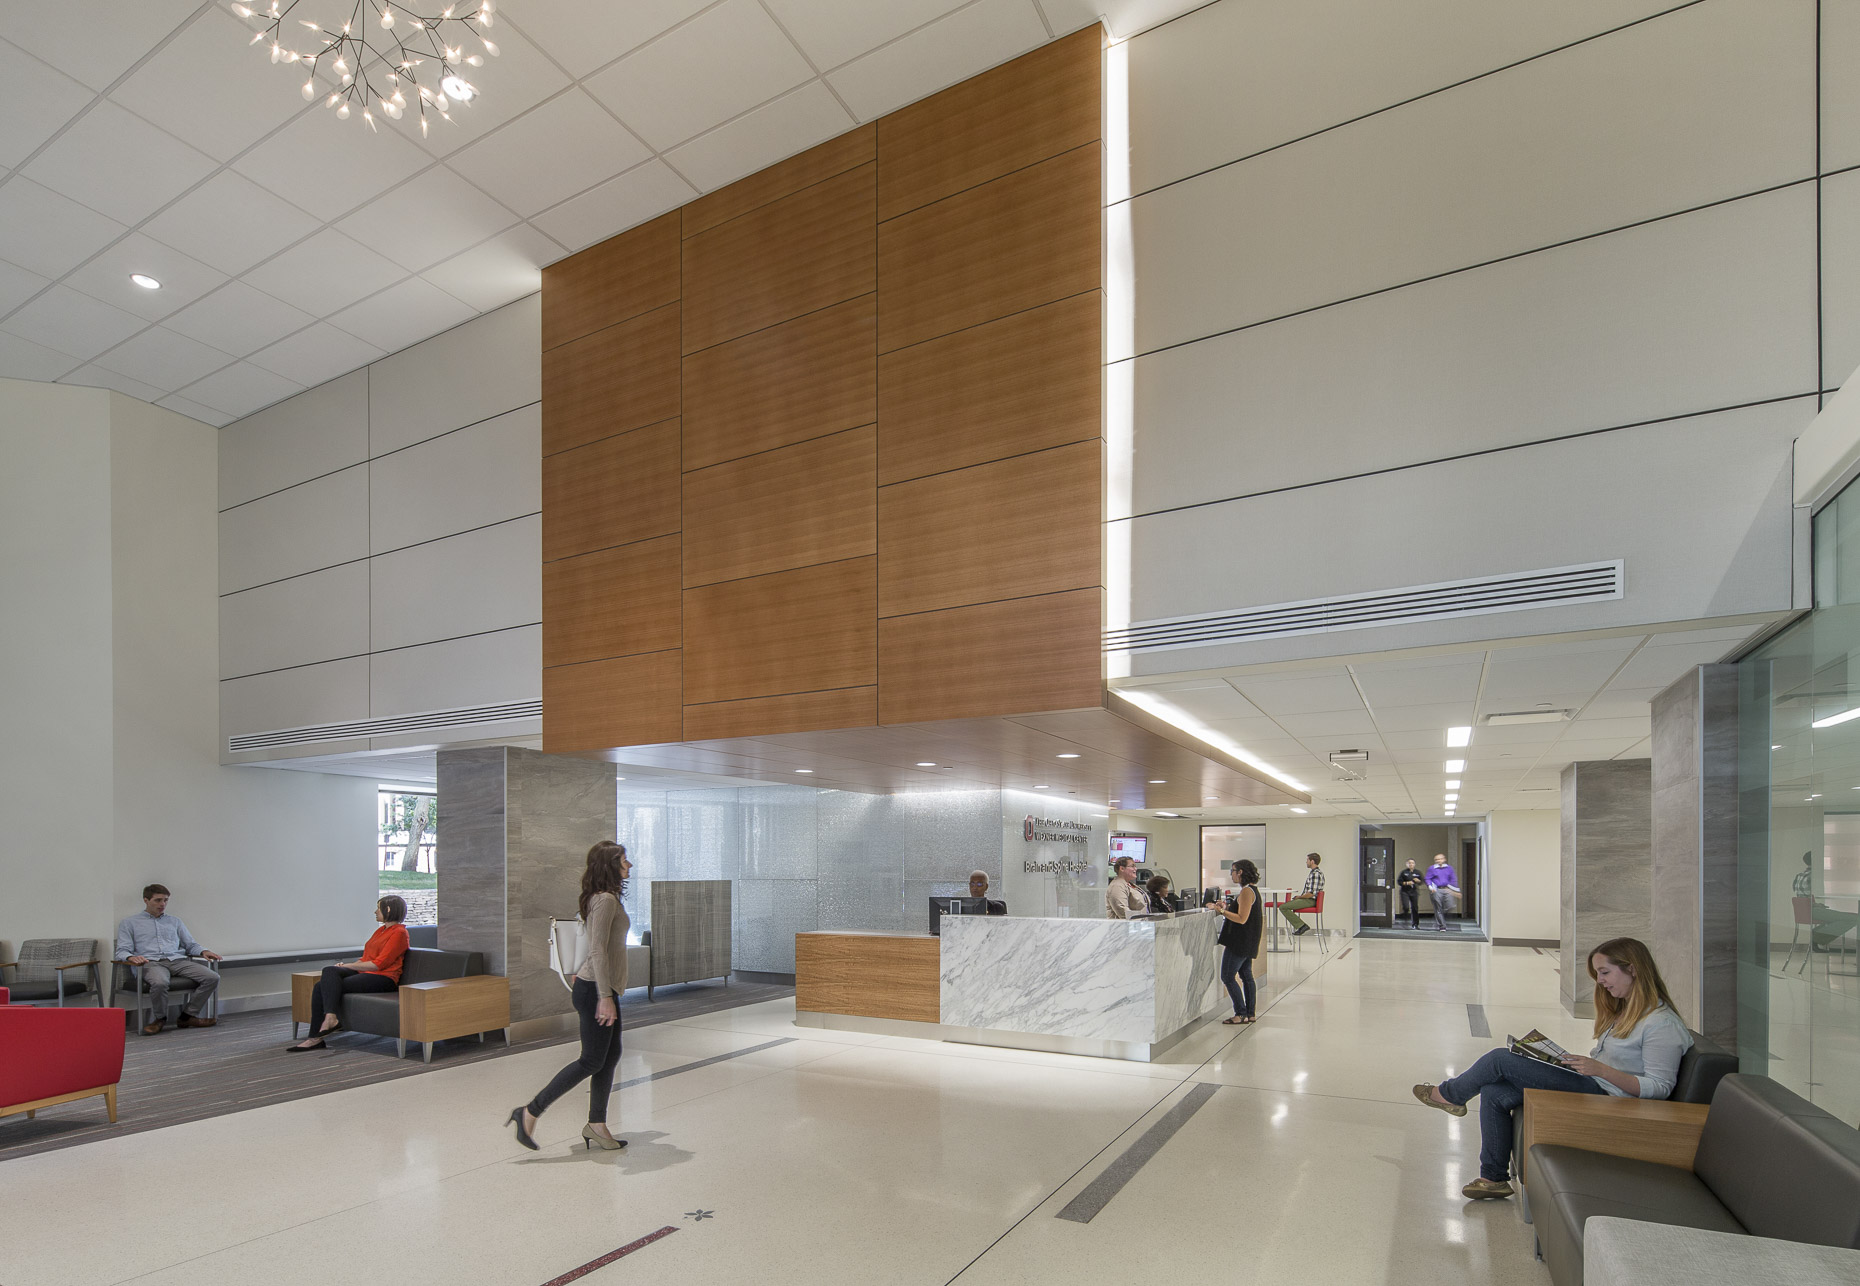 OSUWMC Brain & Spine Hospital by DesignGroup photographed by Brad Feinknopf based in Columbus, Ohio